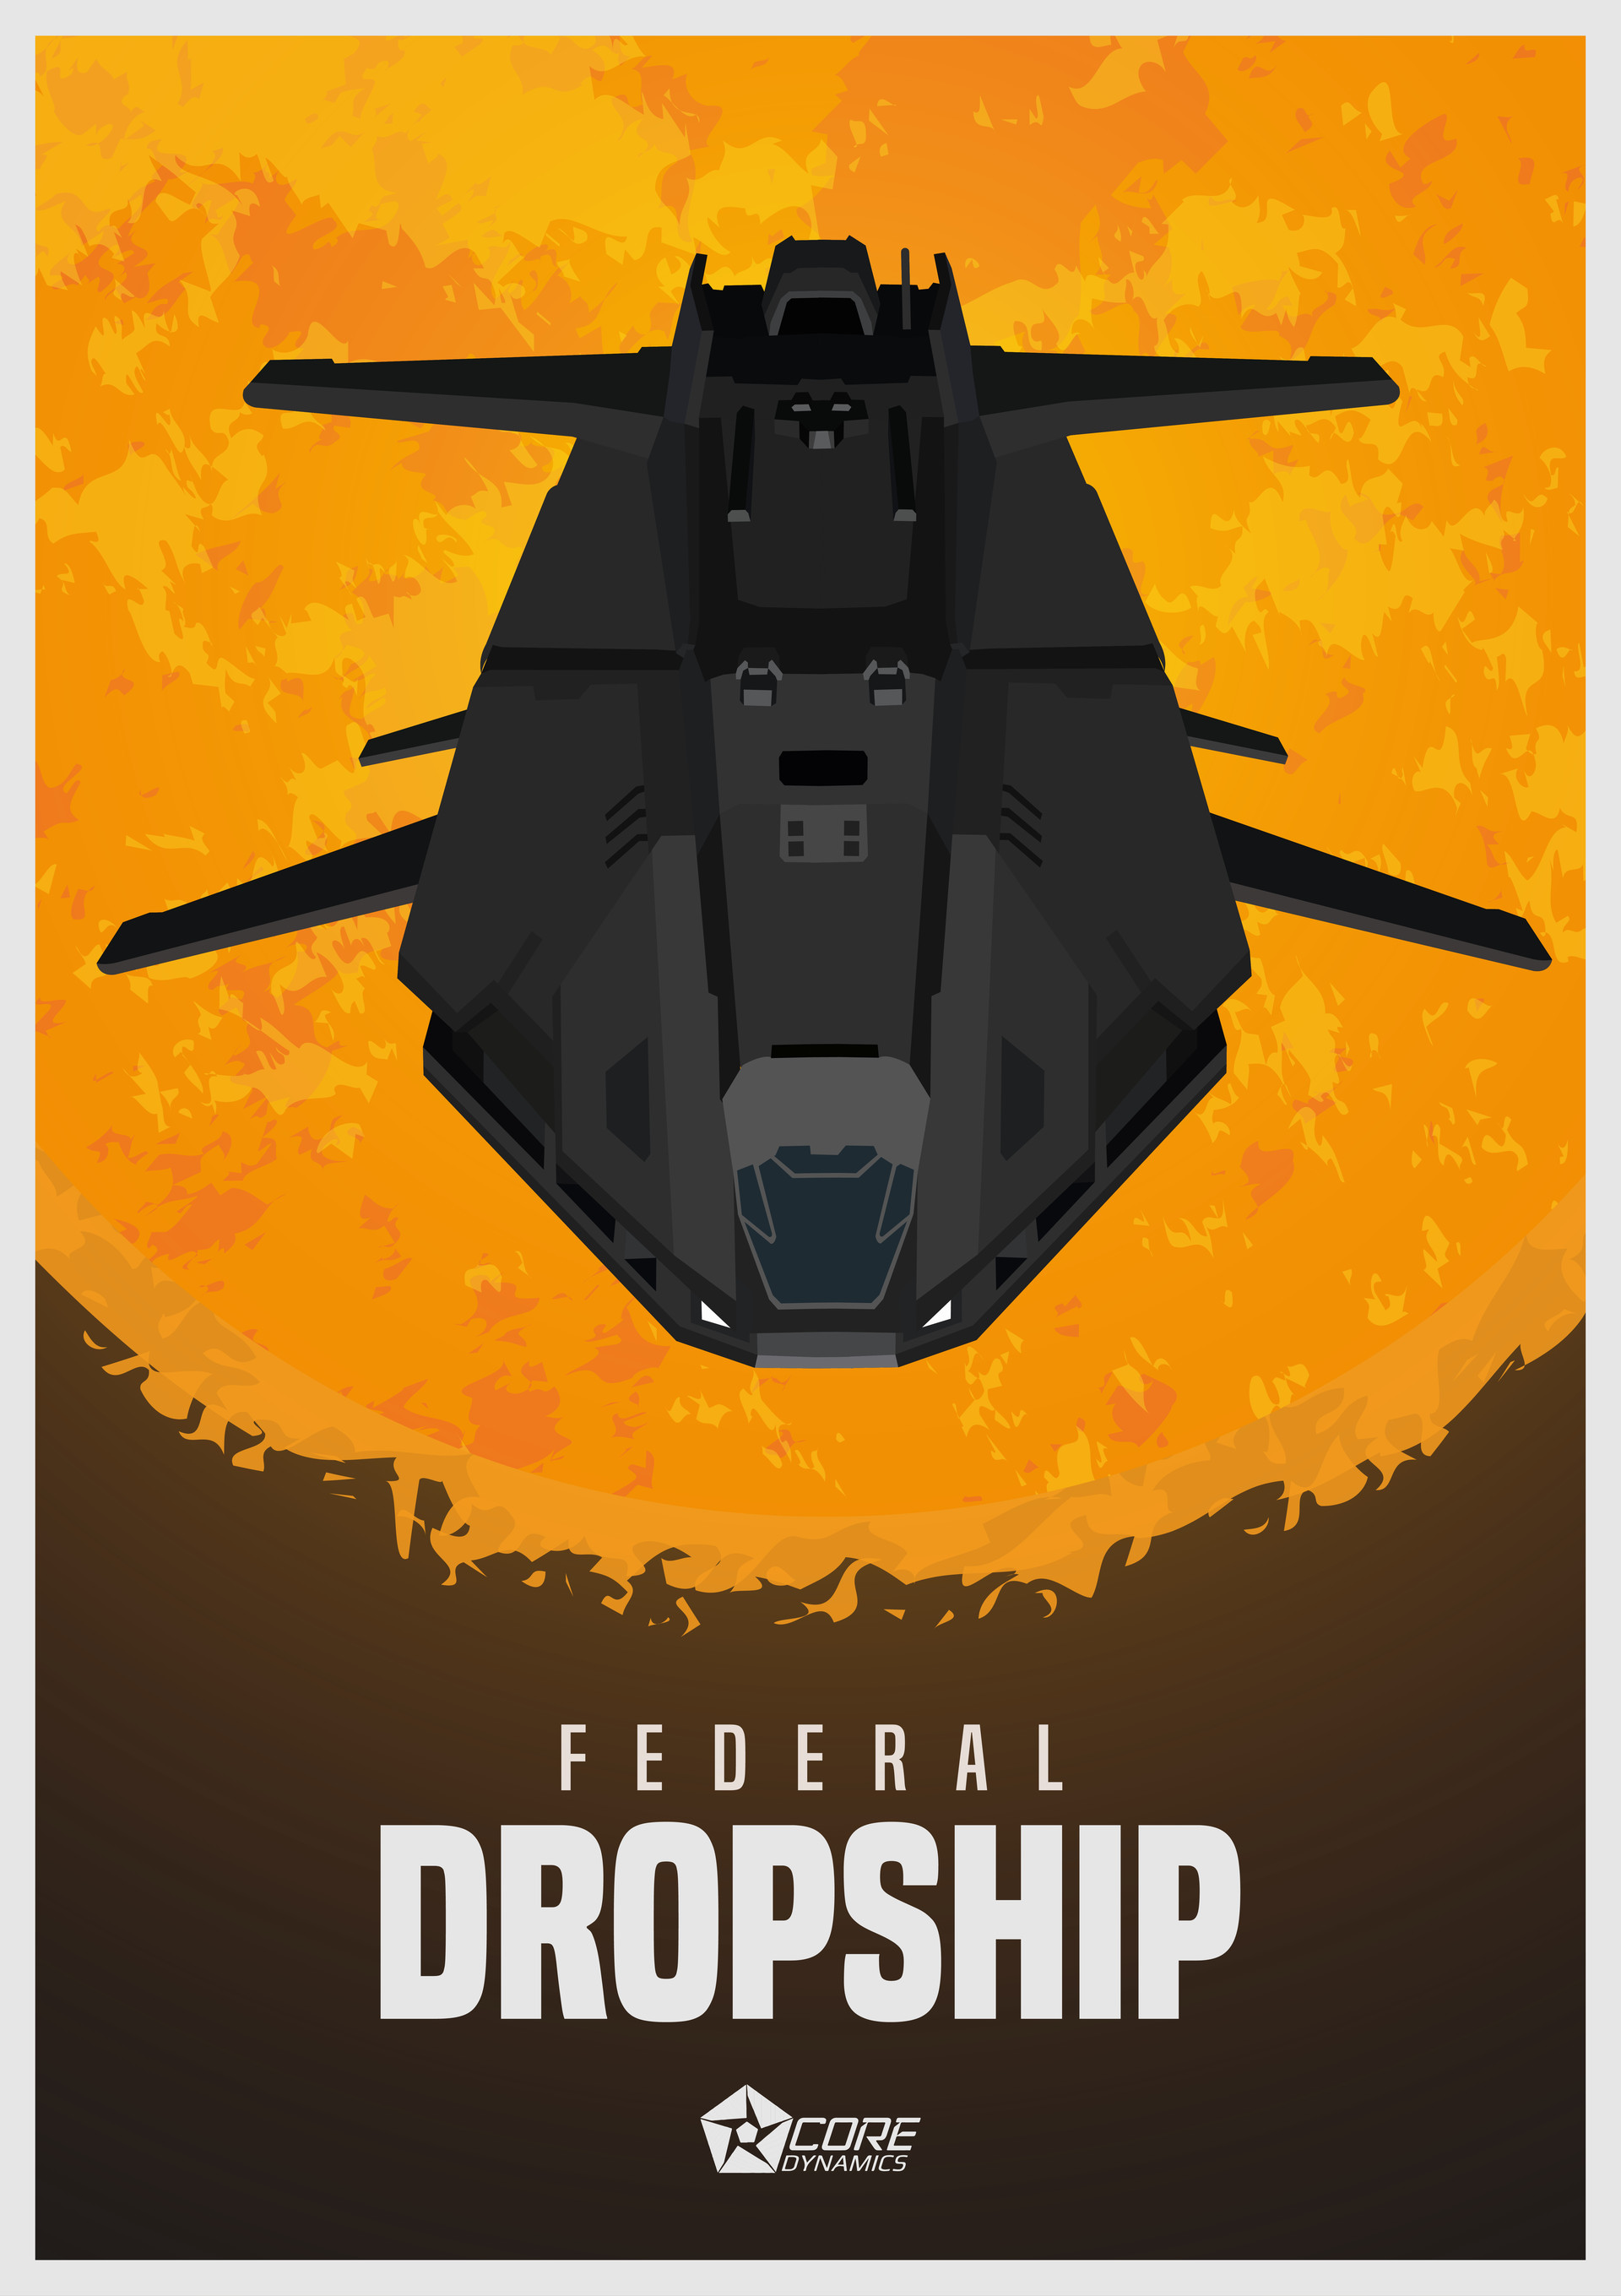 Mathew maddison dropship new 01